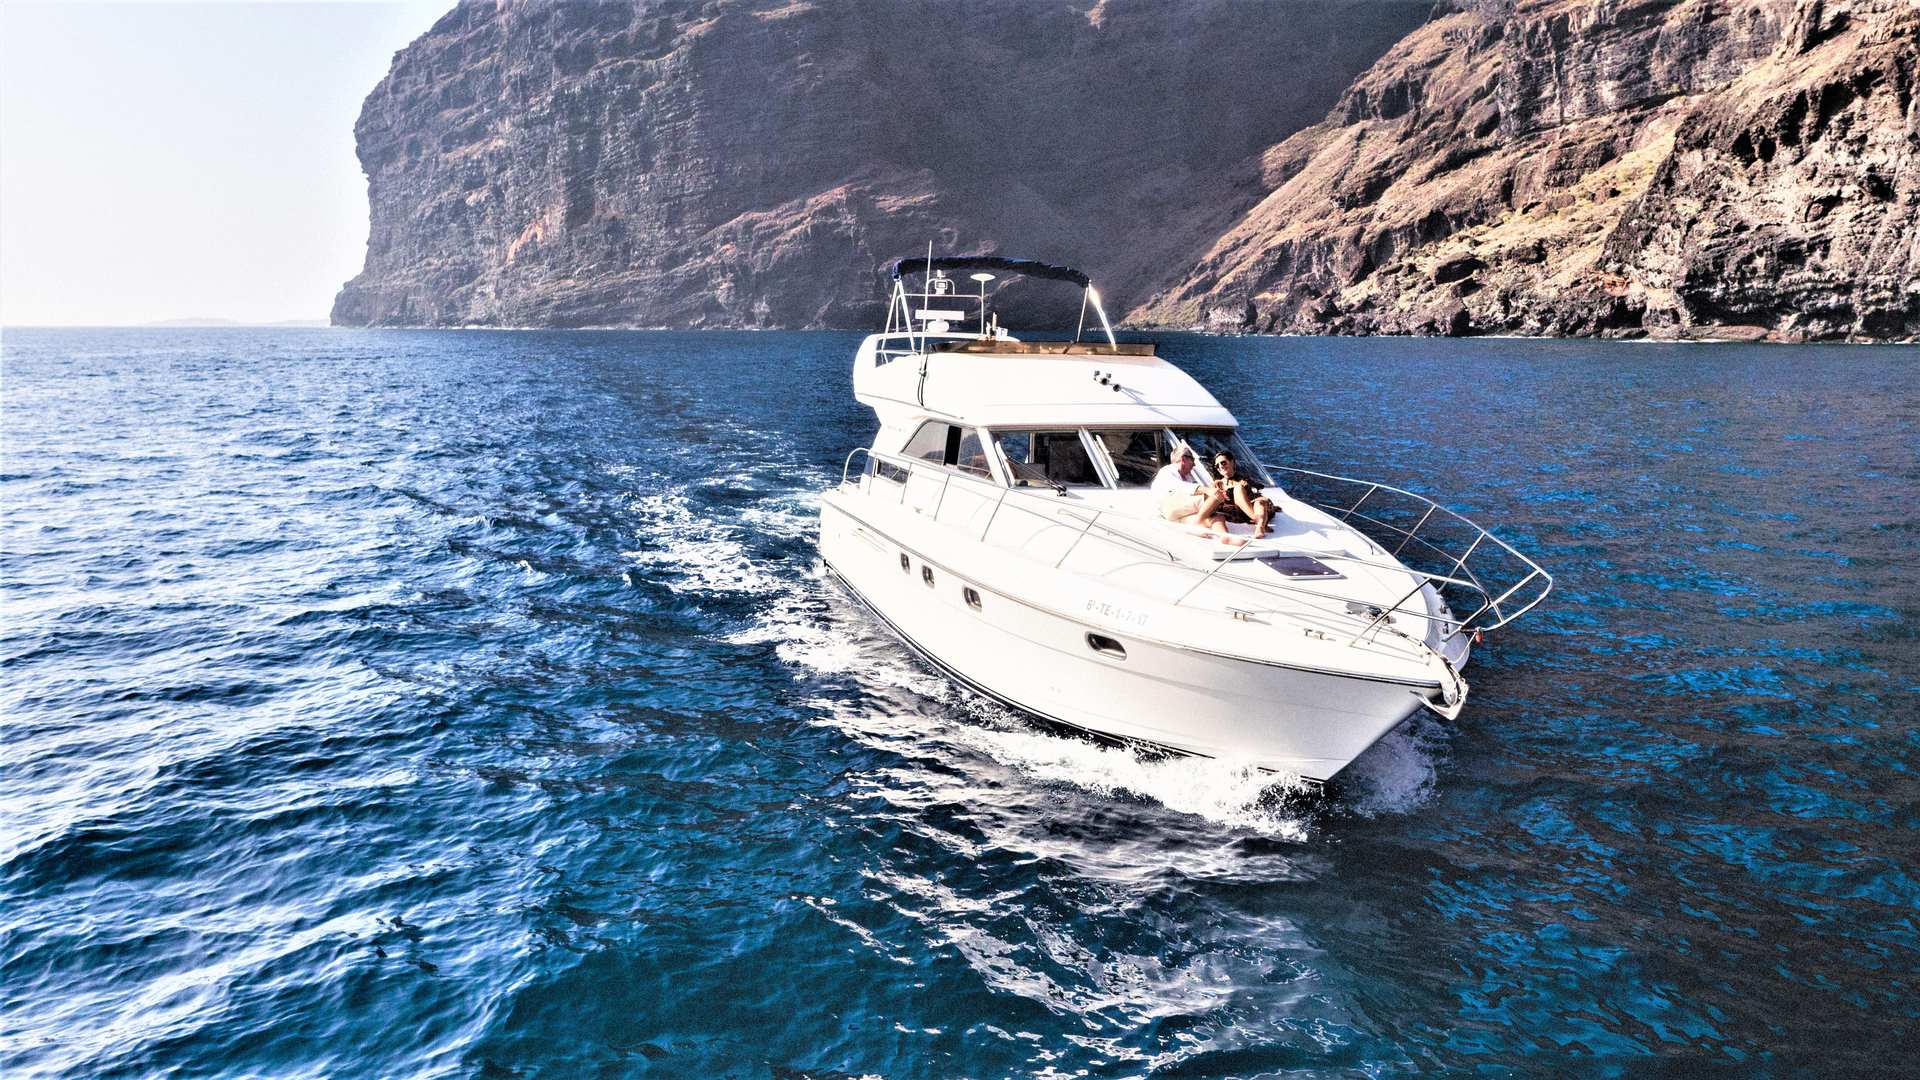 Luxury Motor Boat Charter from Los Gigantes